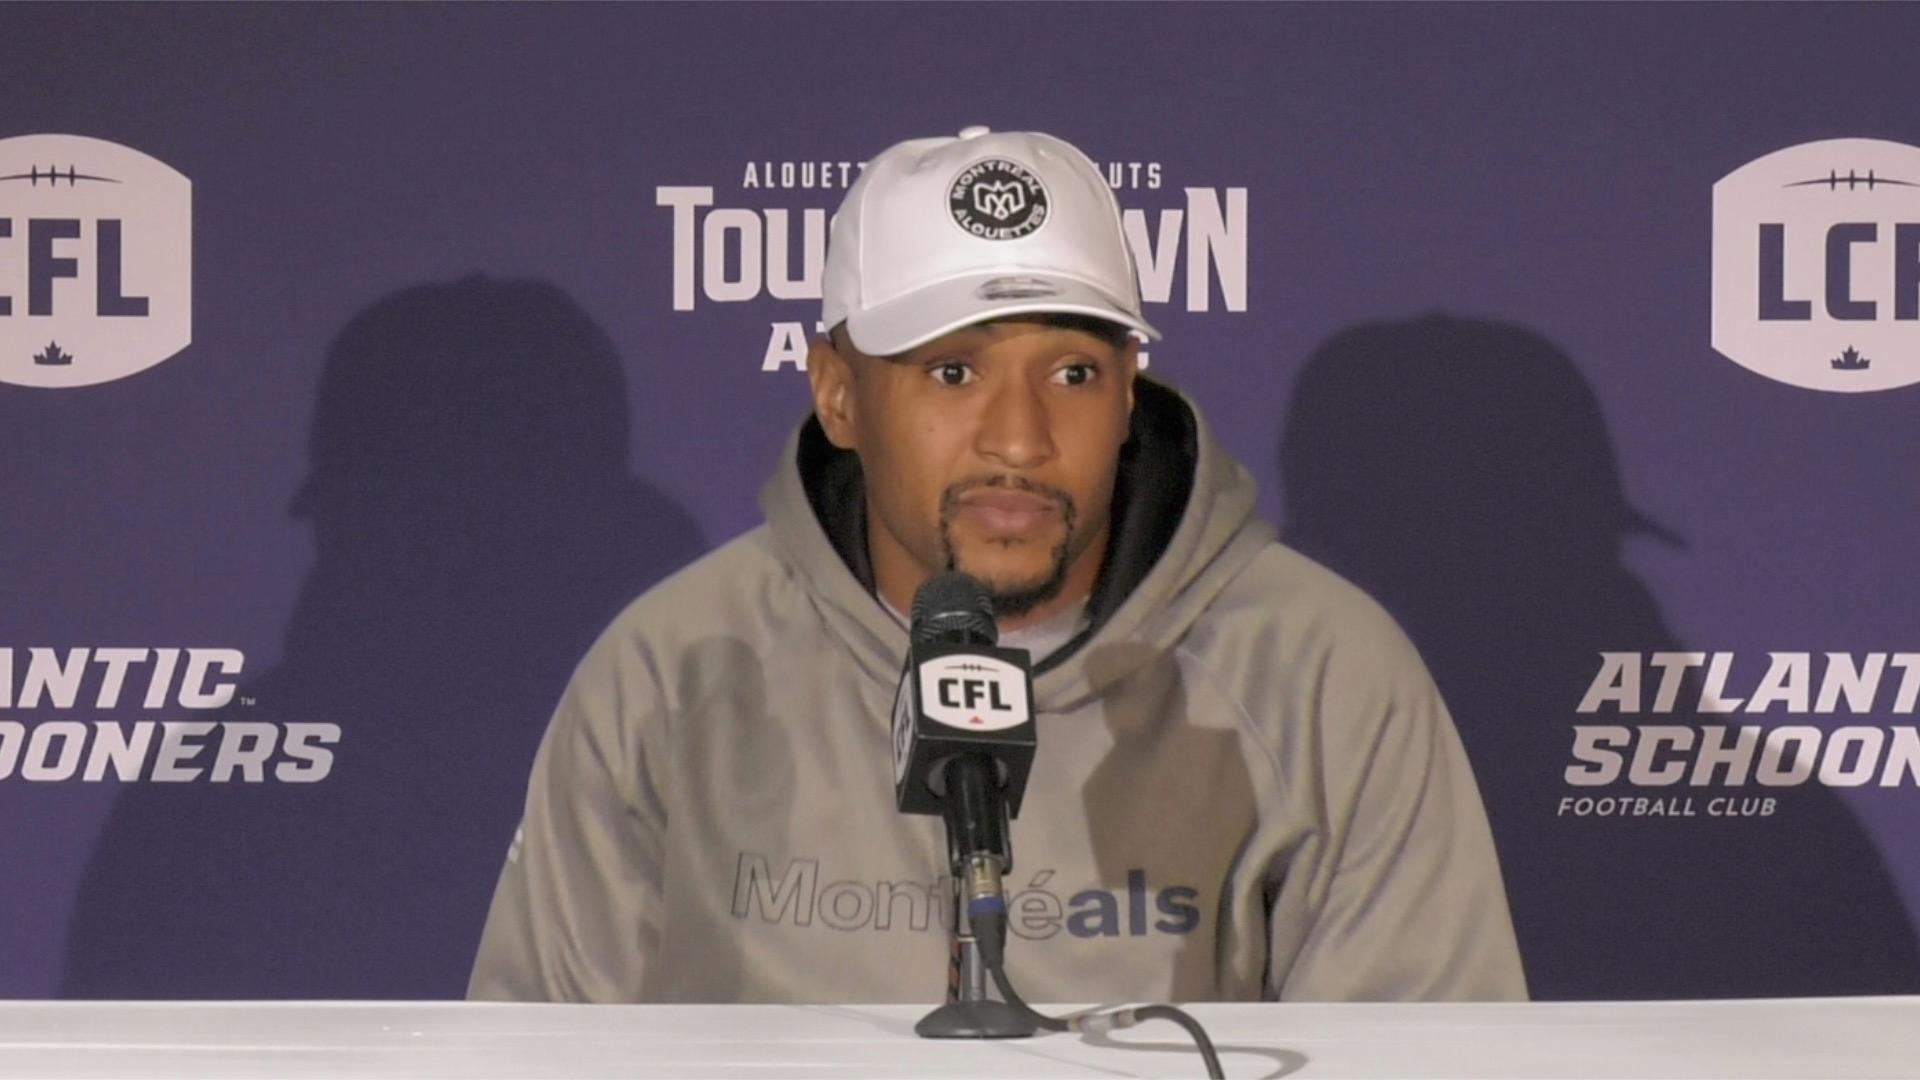 Alouettes address media in Moncton - CFL.ca